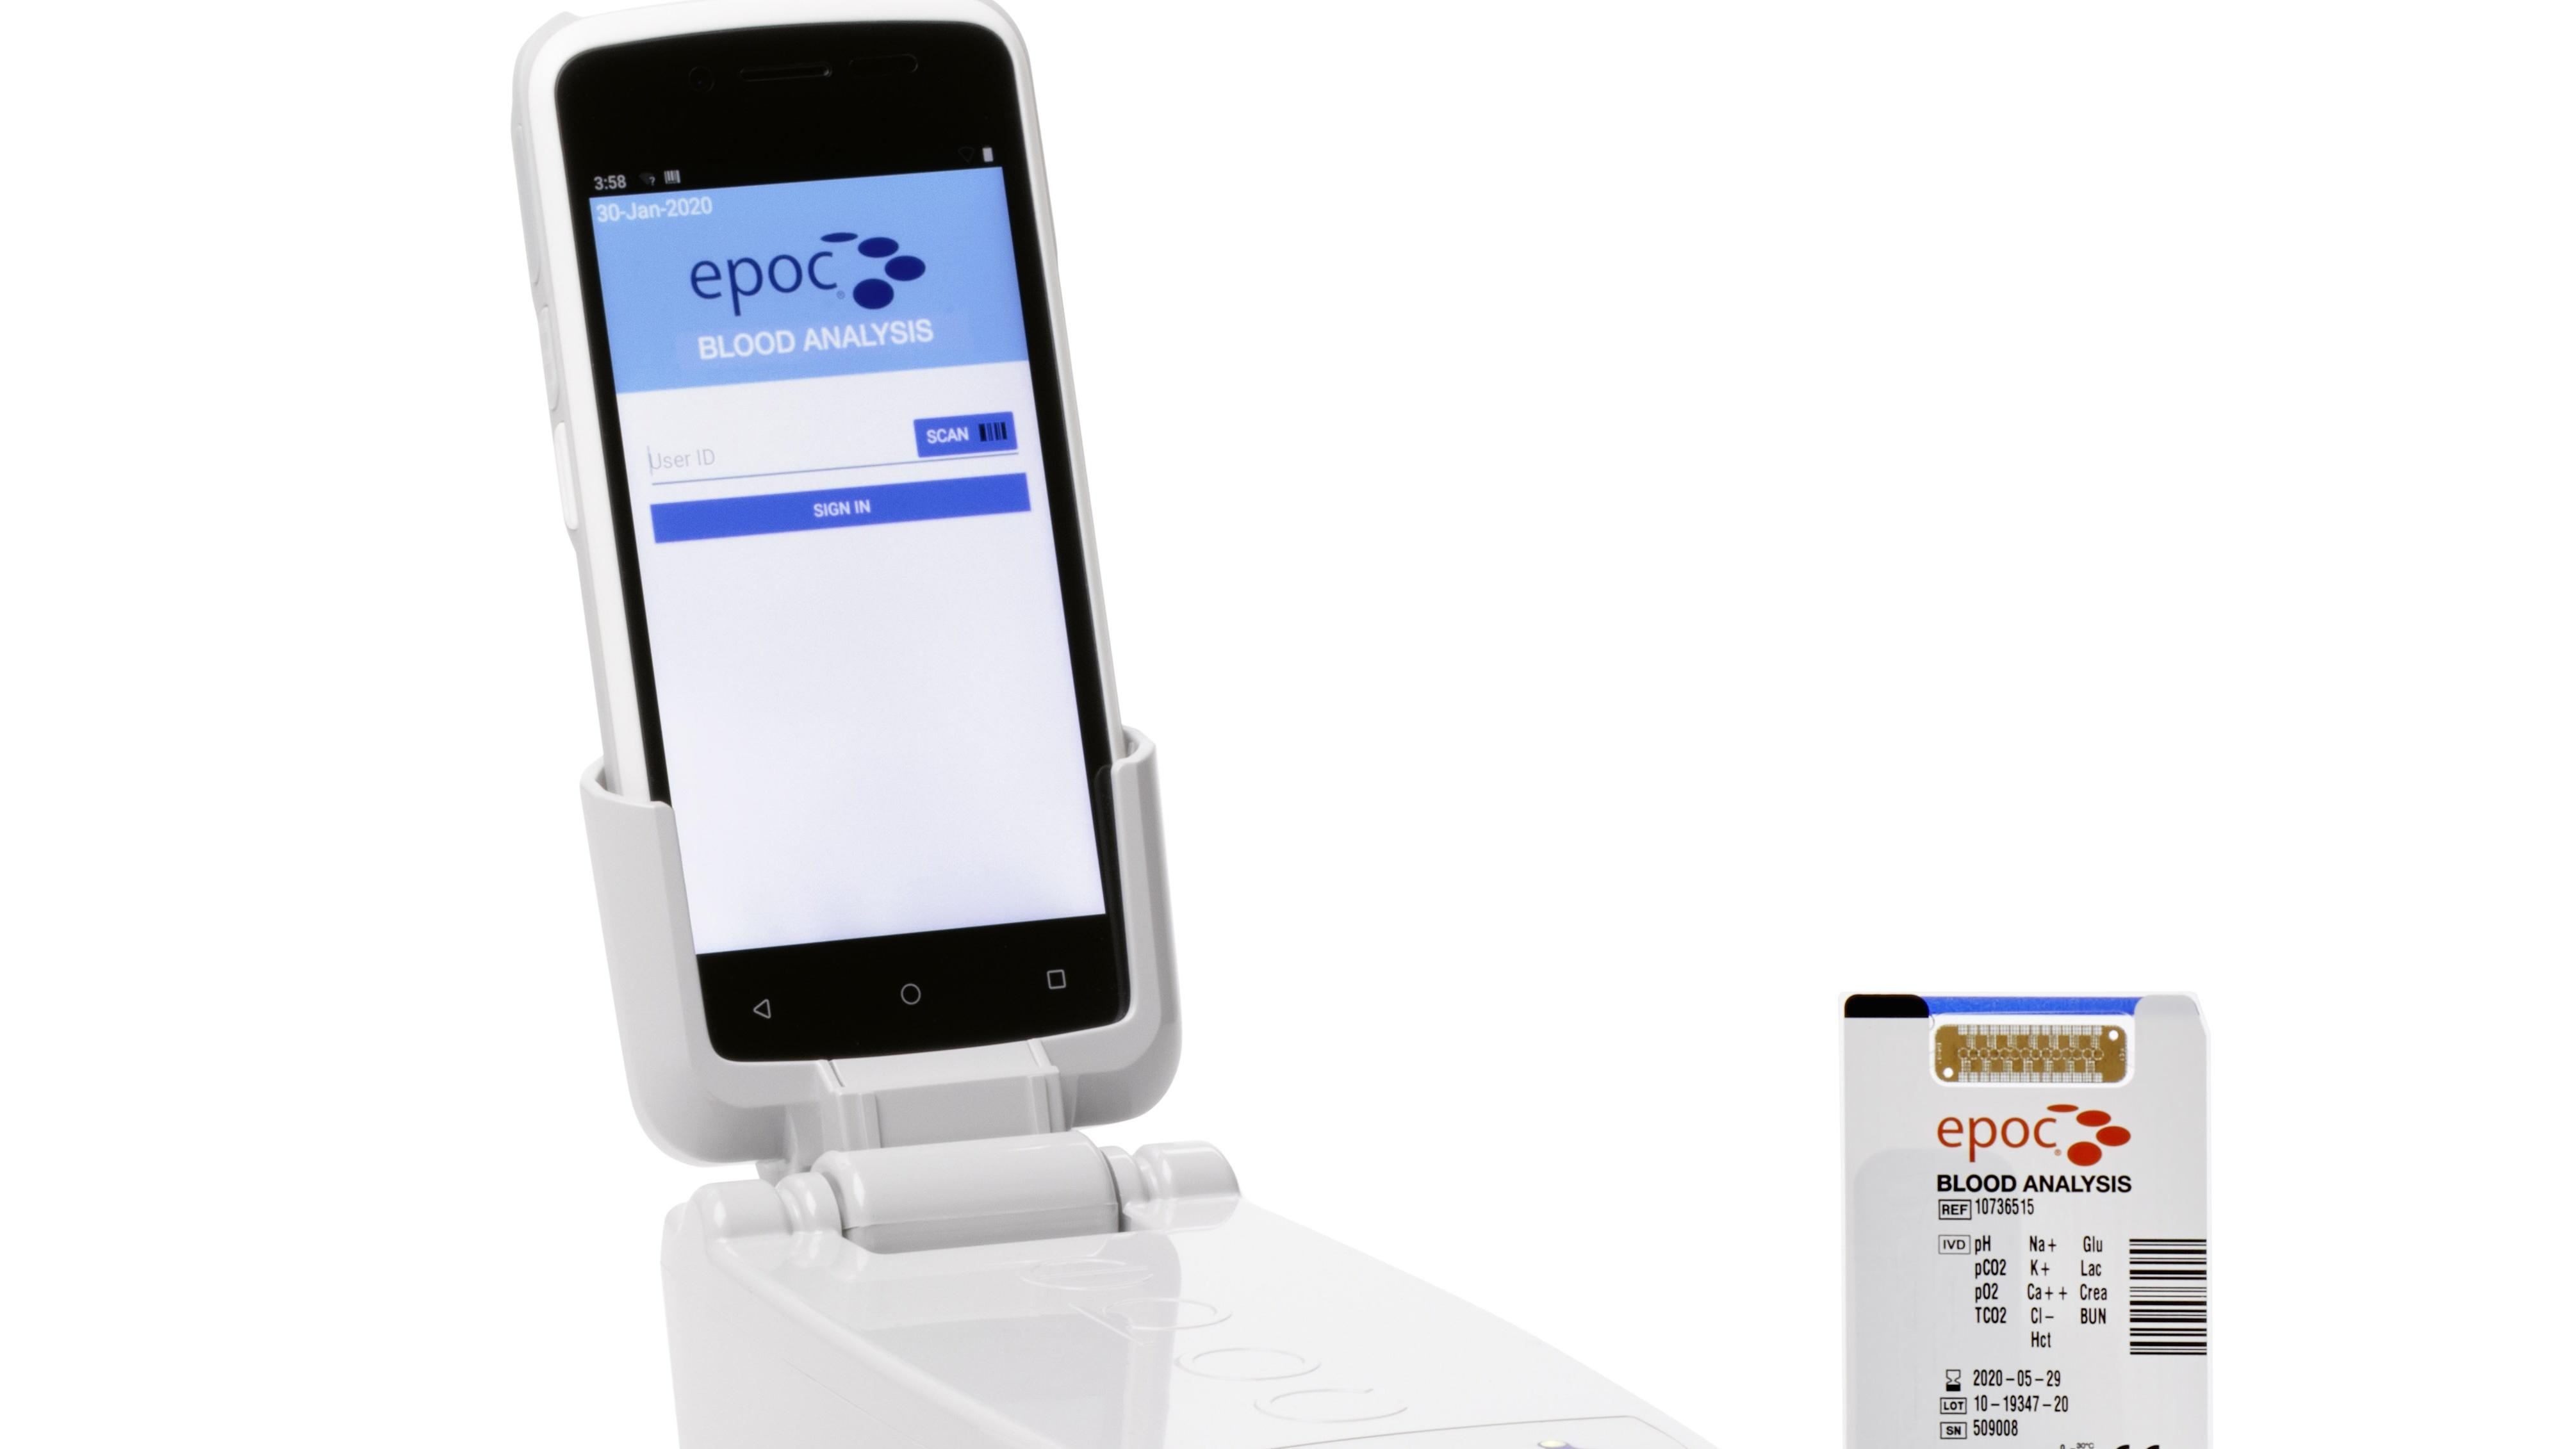 Siemens Healthineers Receives CE Mark and FDA Clearance for the epoc NXS Host Mobile Computer for Point-of-Care Testing